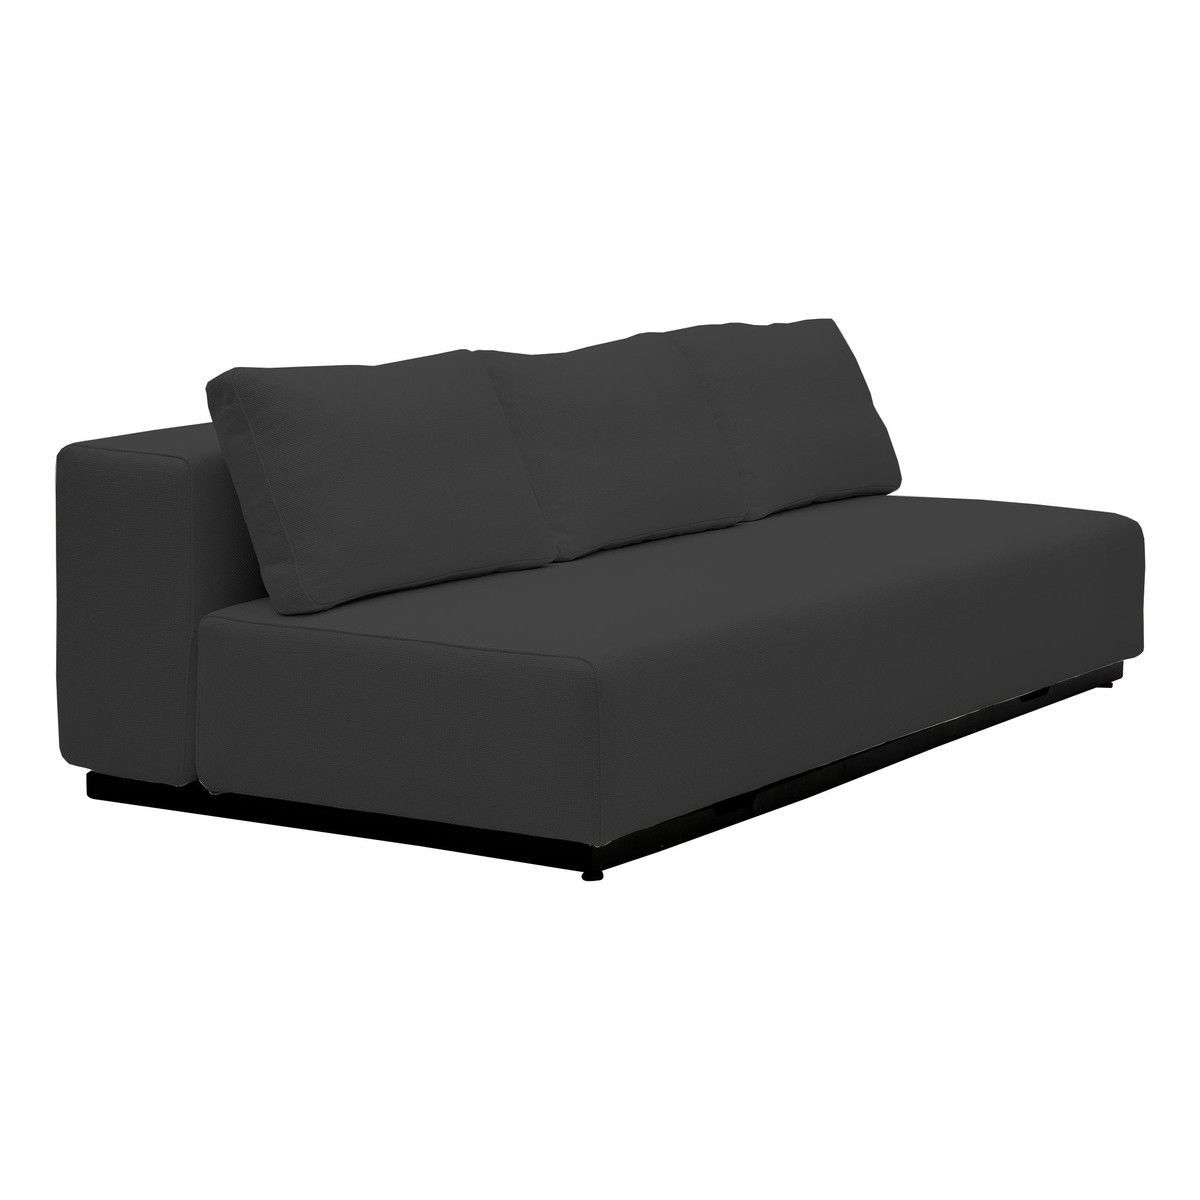 softline sofa sleep day bed sofa softline ambientedirect thesofa. Black Bedroom Furniture Sets. Home Design Ideas